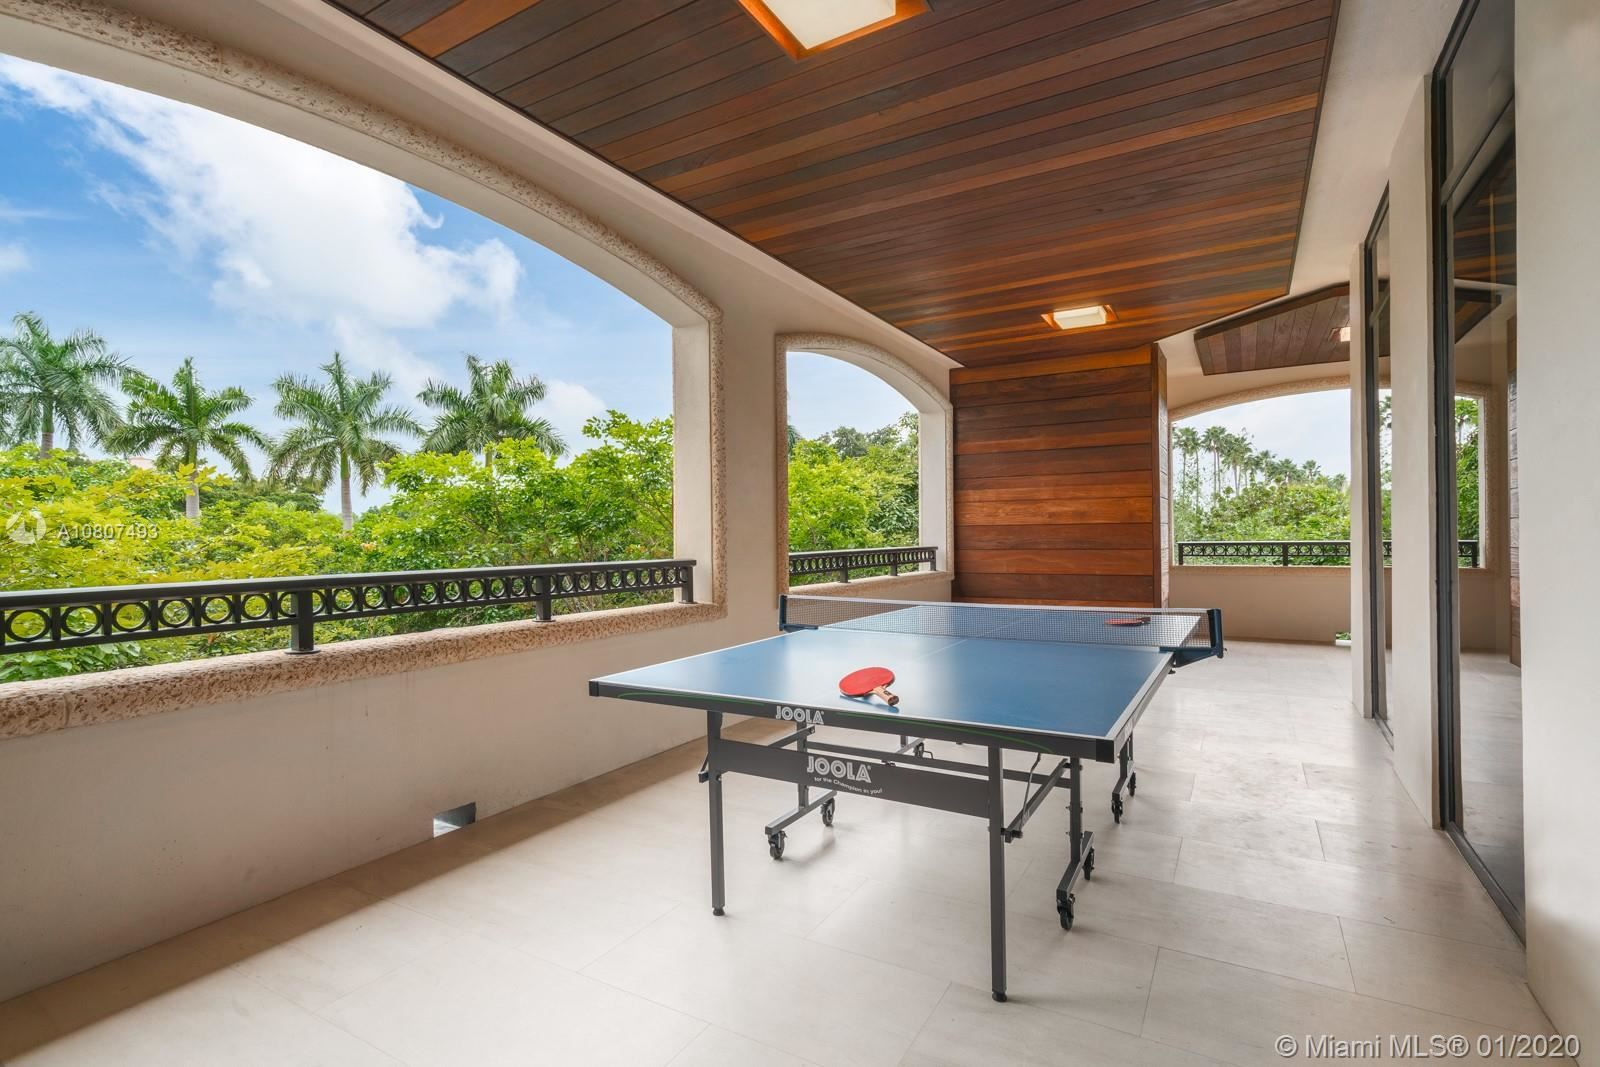 Photo 24 of Listing MLS a10807493 in 7021 Fisher Island Dr #7021 Miami Beach FL 33109